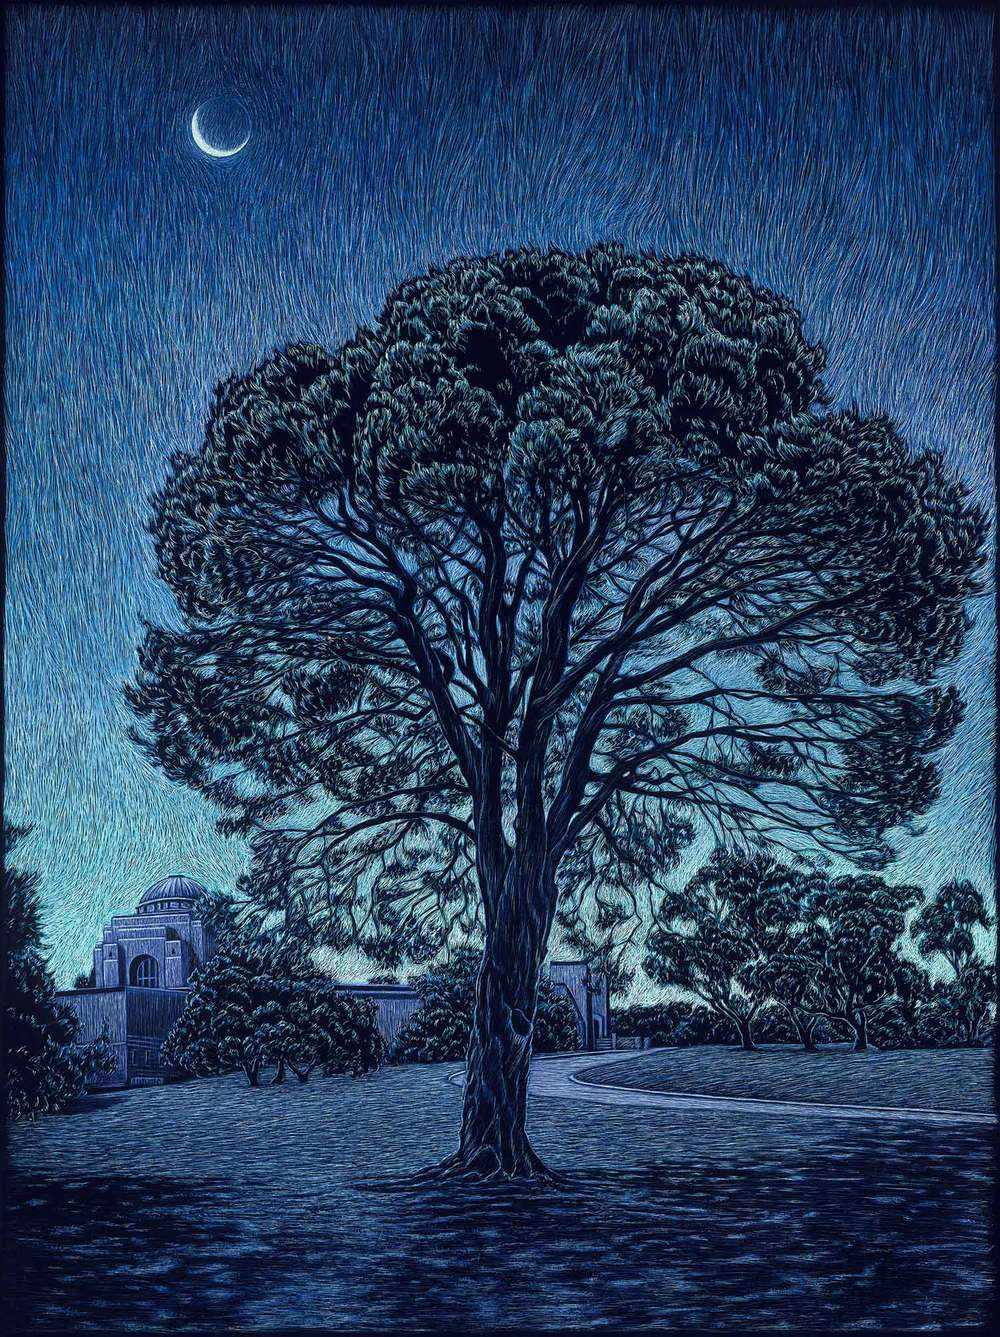 THE LONE PINE, AUSTRALIAN WAR MEMORIAL  61 X 45.5 CM    EDITION OF 50  PIGMENT ON COTTON RAG PAPER  $1,100